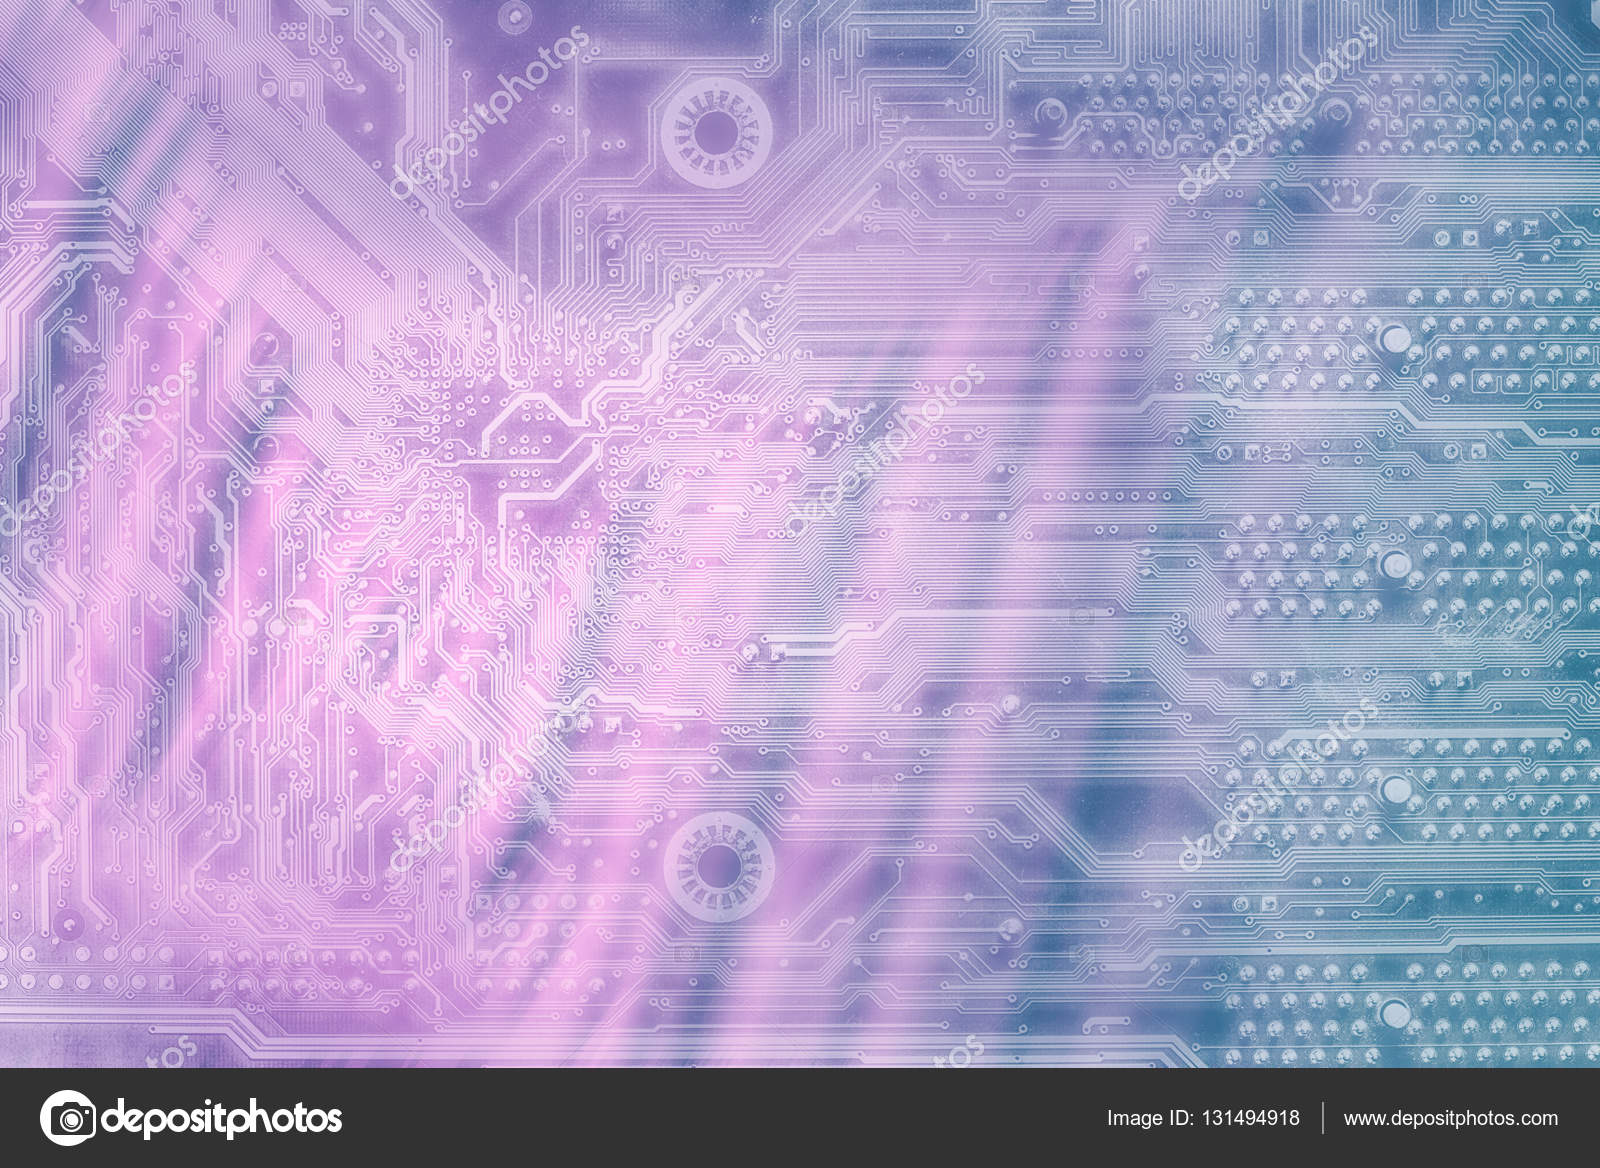 Drawing Modern Electronic Circuit On Blue Grungy Background